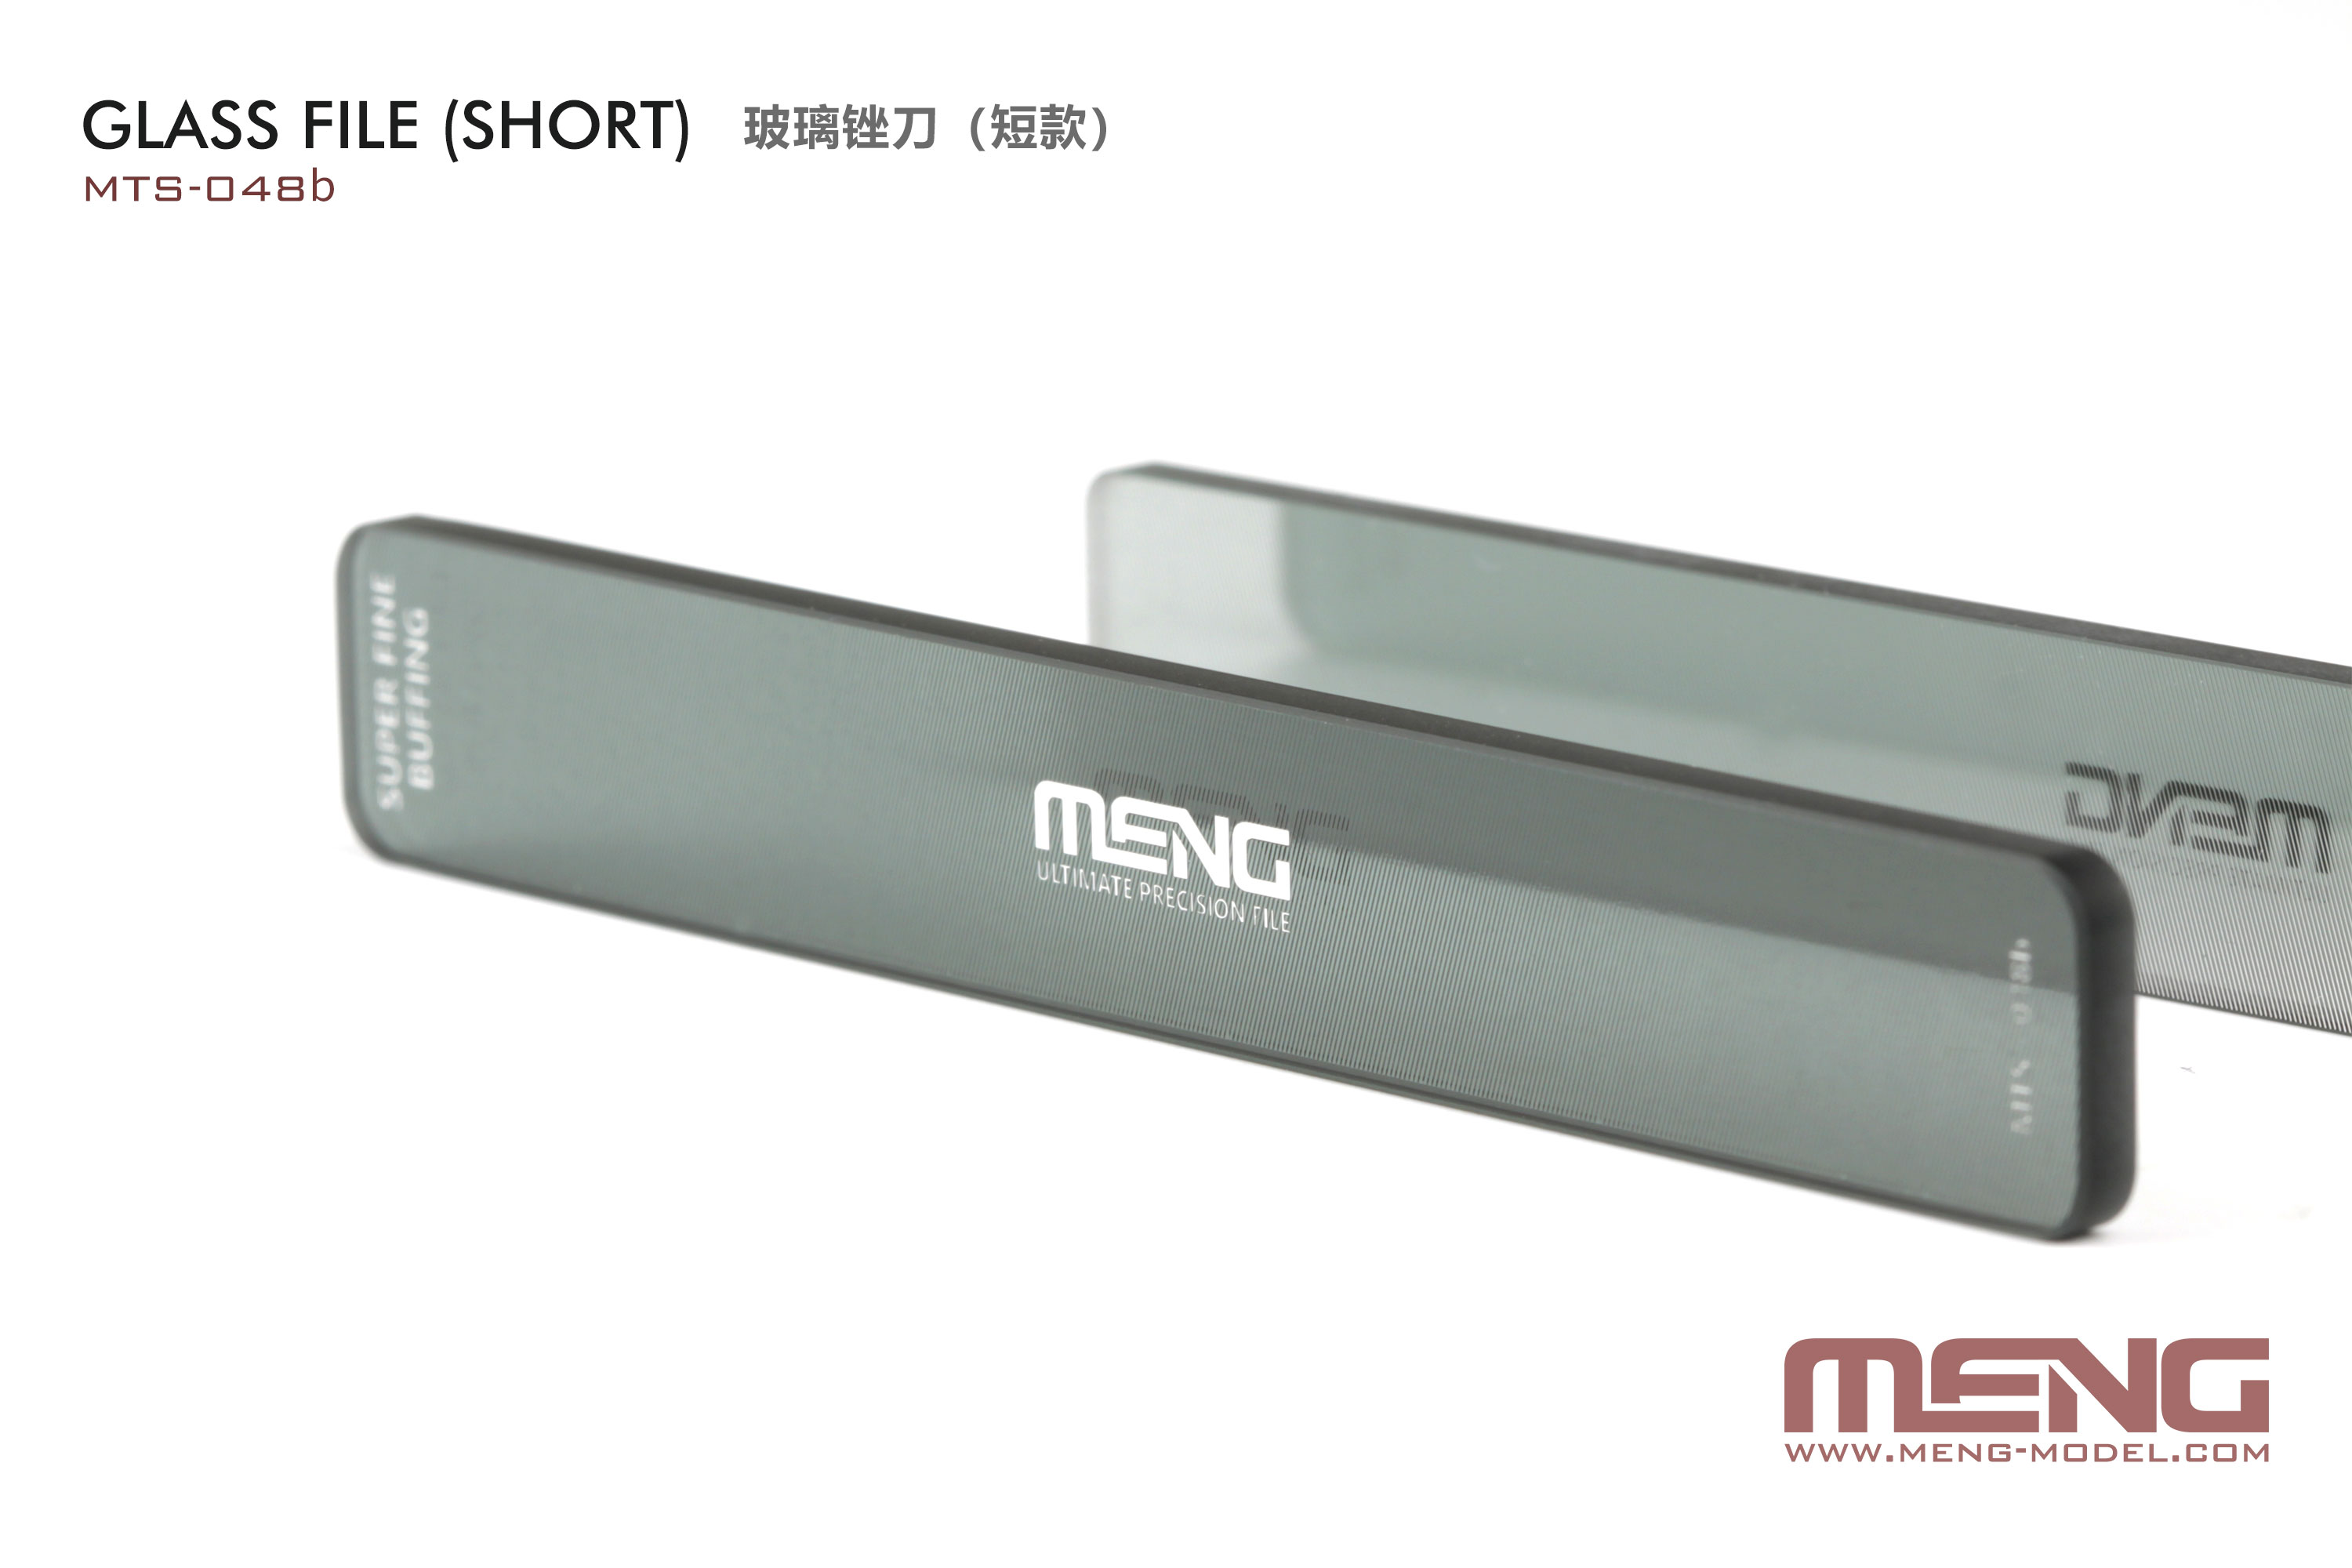 Meng Glass File (short)